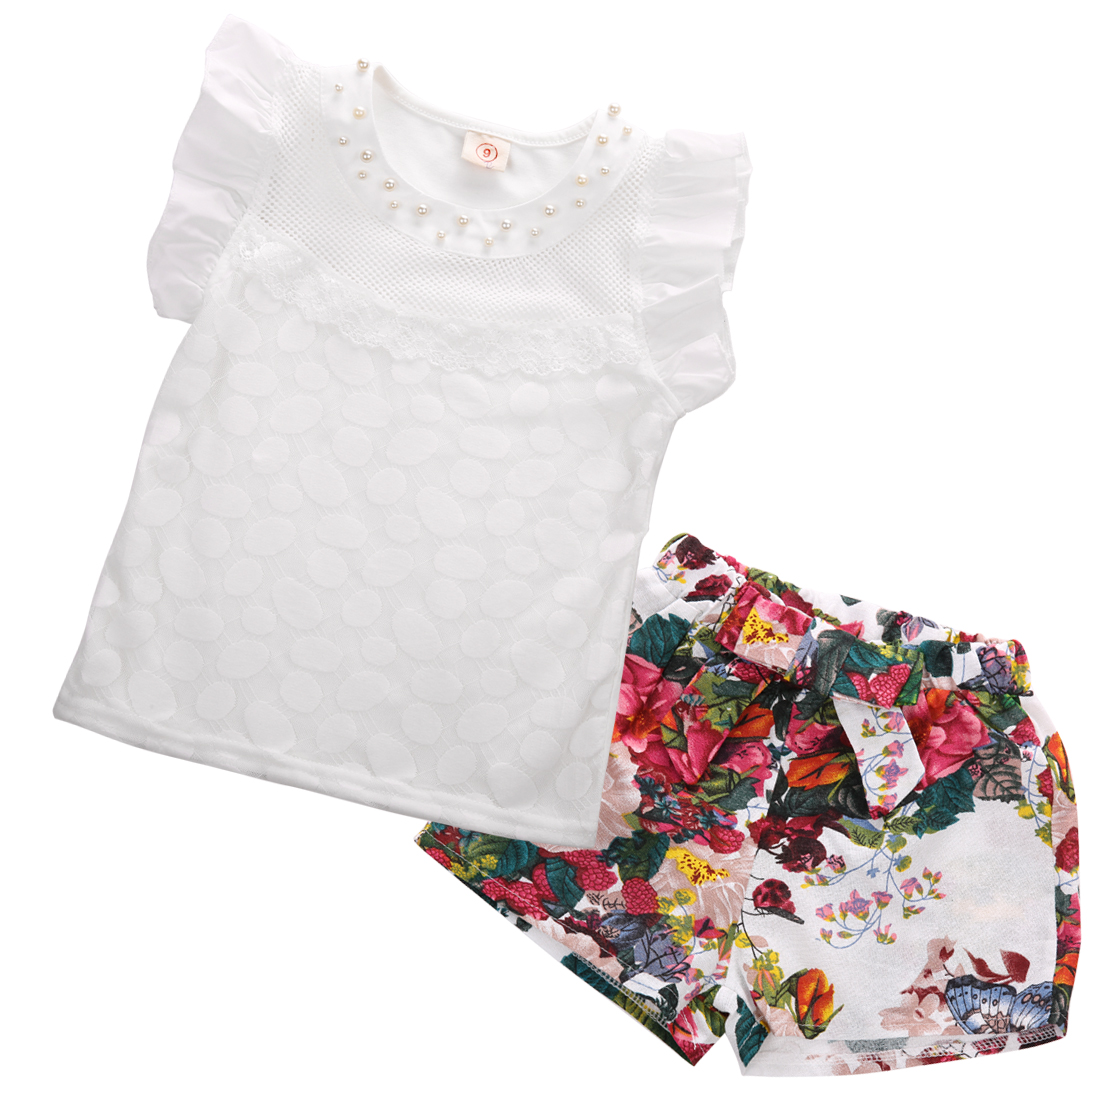 New Toddler Baby Kids Girl Summer Clothes Sleeveless Top+Floral Trousers Outfits